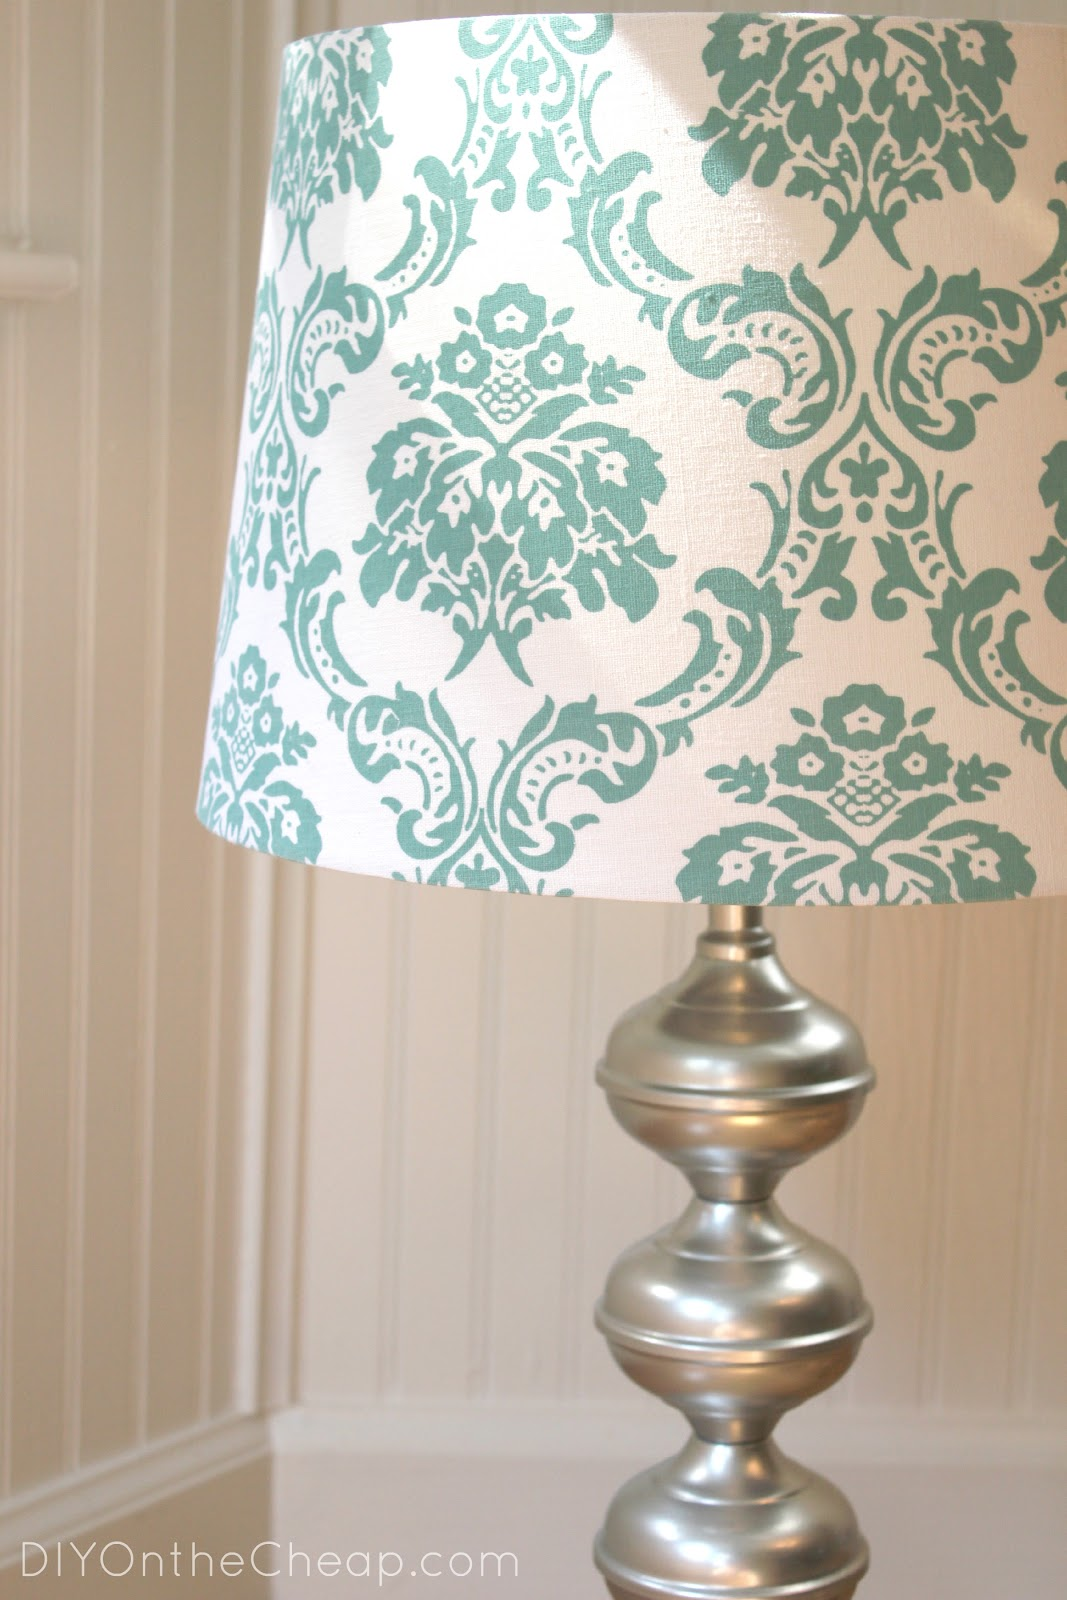 Thrift store lamp makeover diy on the cheap for Redoing lamp shades